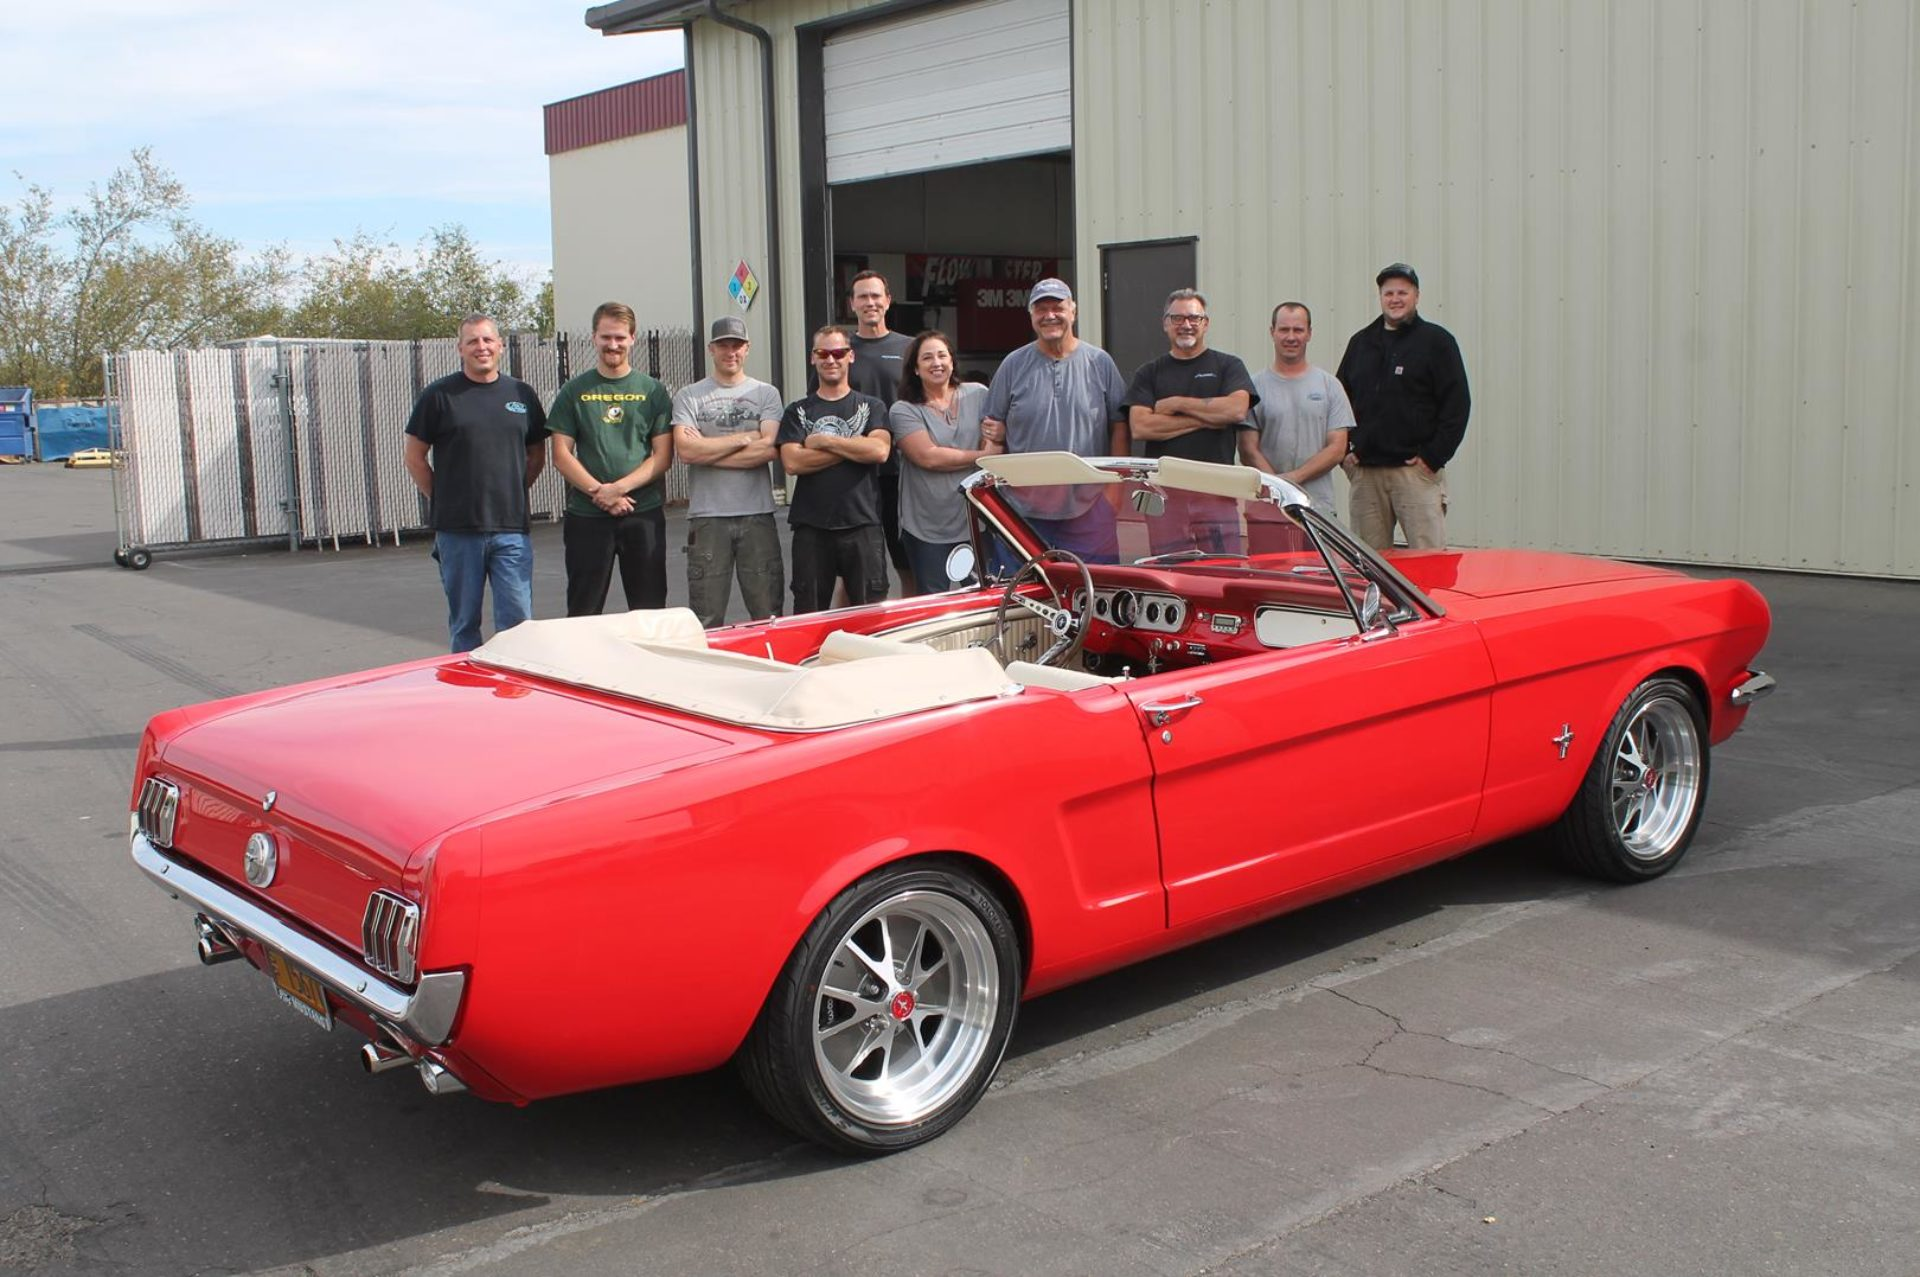 1965 Red Mustang Metalworks Classics Auto Restoration Speed Shop Metalworks Classic Auto Restoration Speed Shop